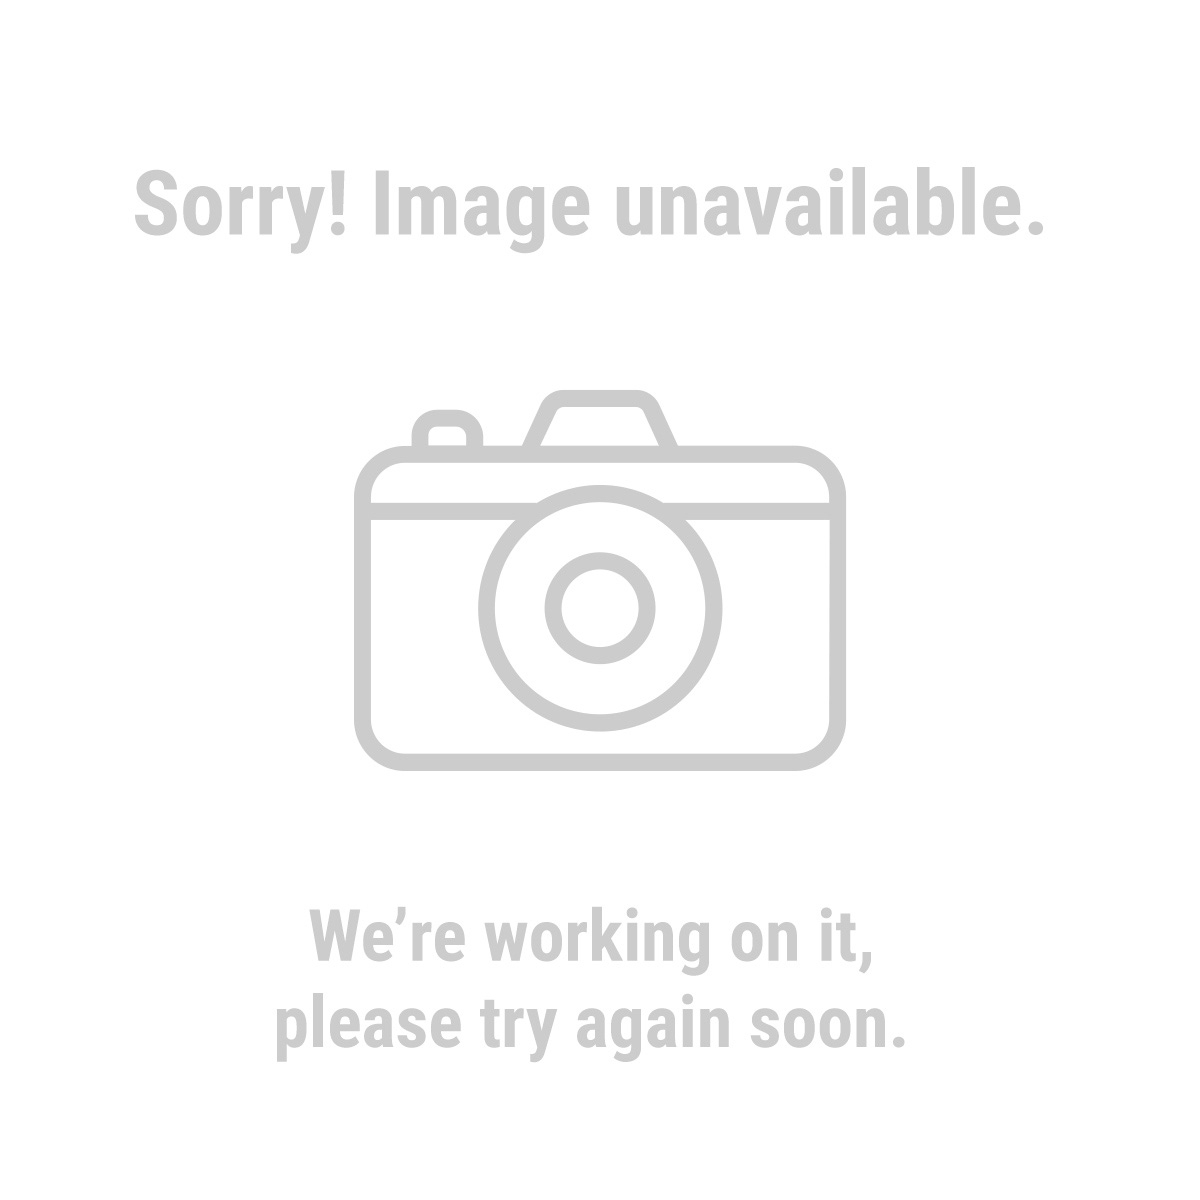 67603 Auto Glass Resurfacing Repair Pads